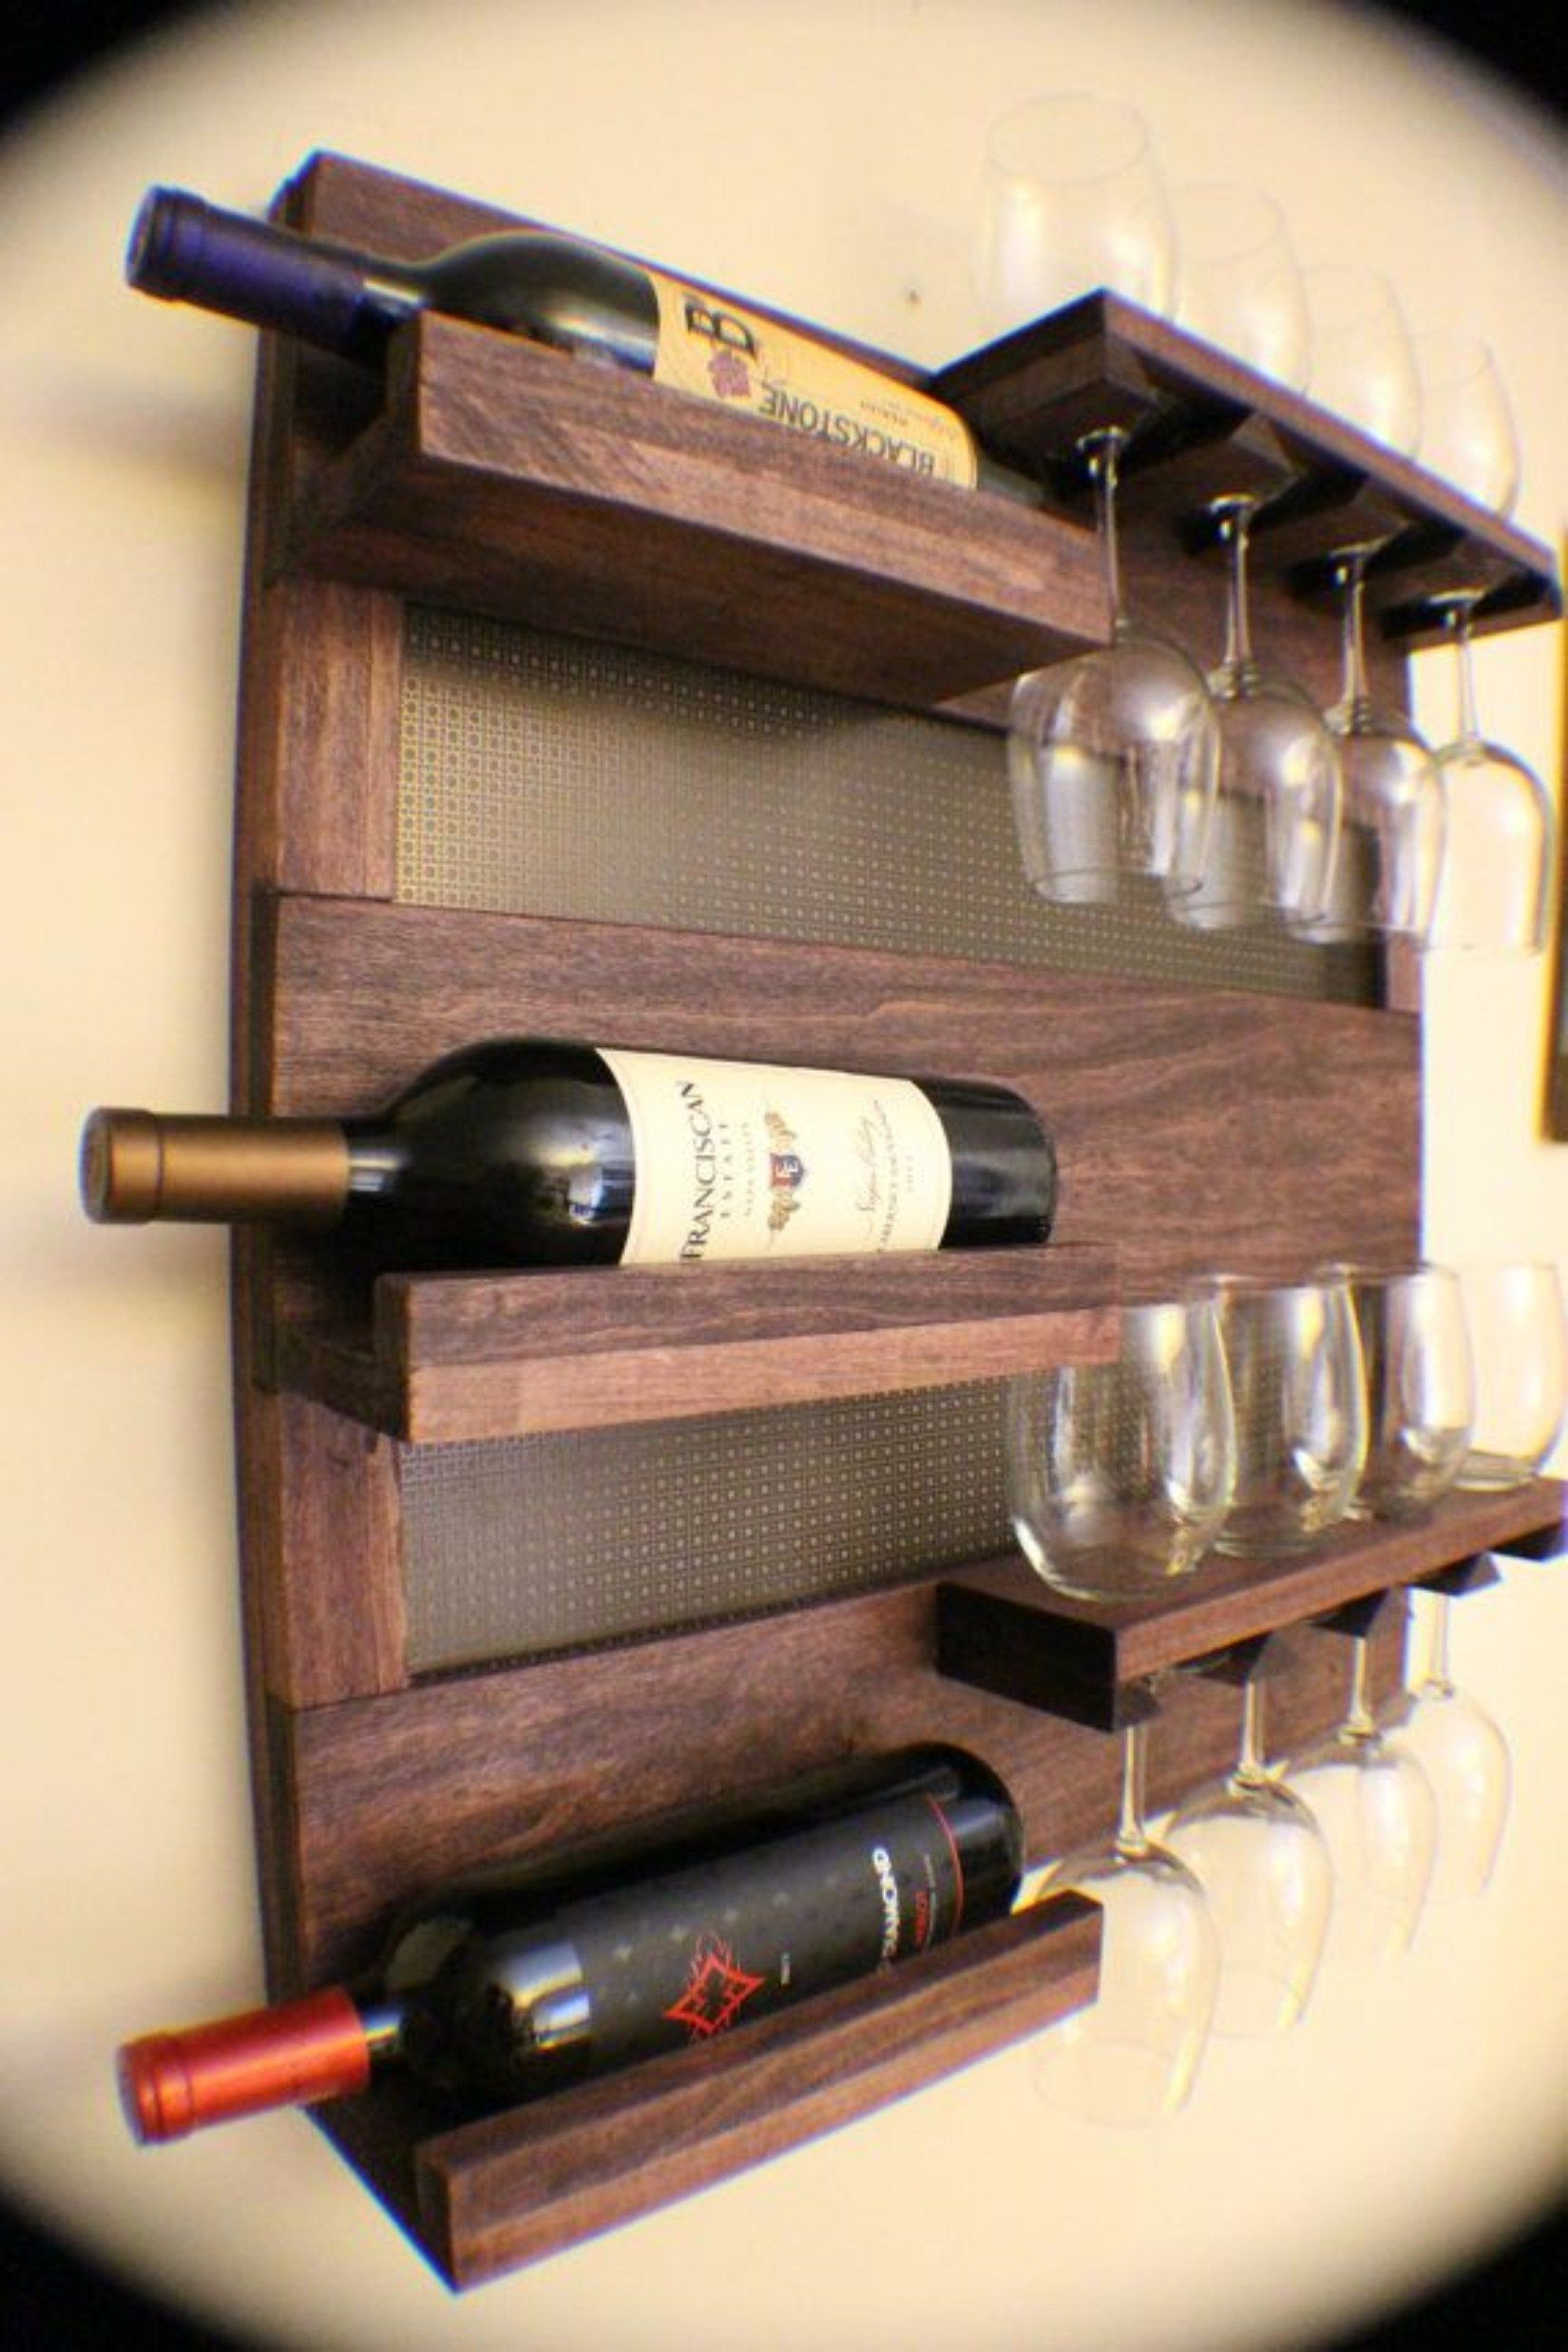 A small and simple wall mounted wine rack